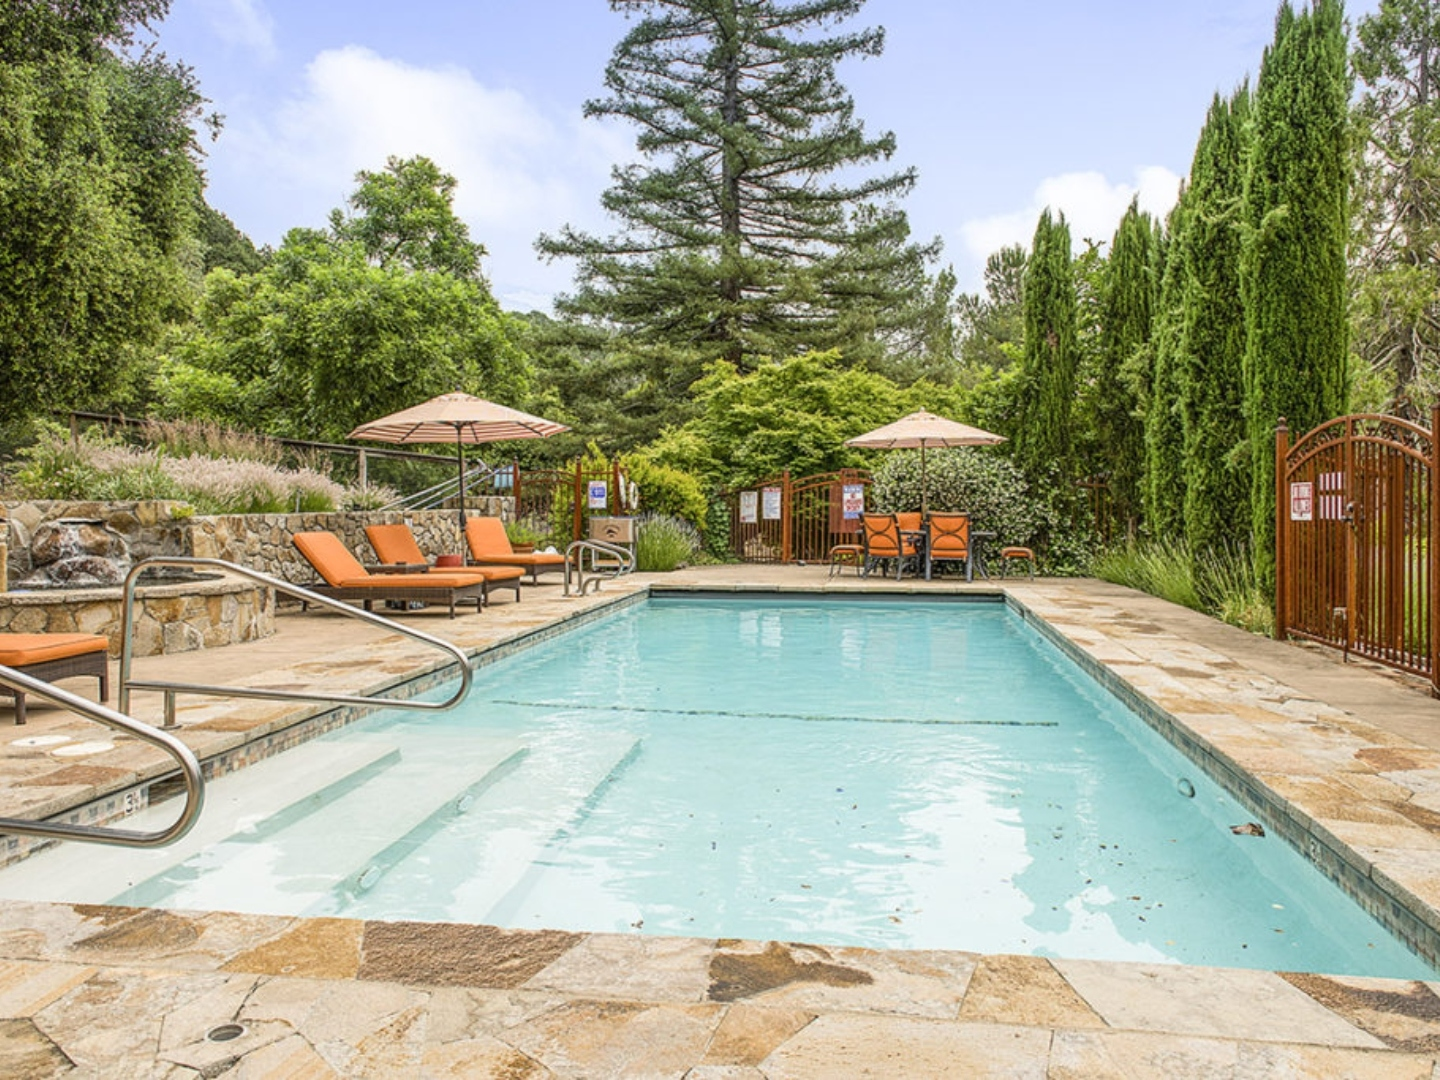 St. Helena Bed and Breakfast